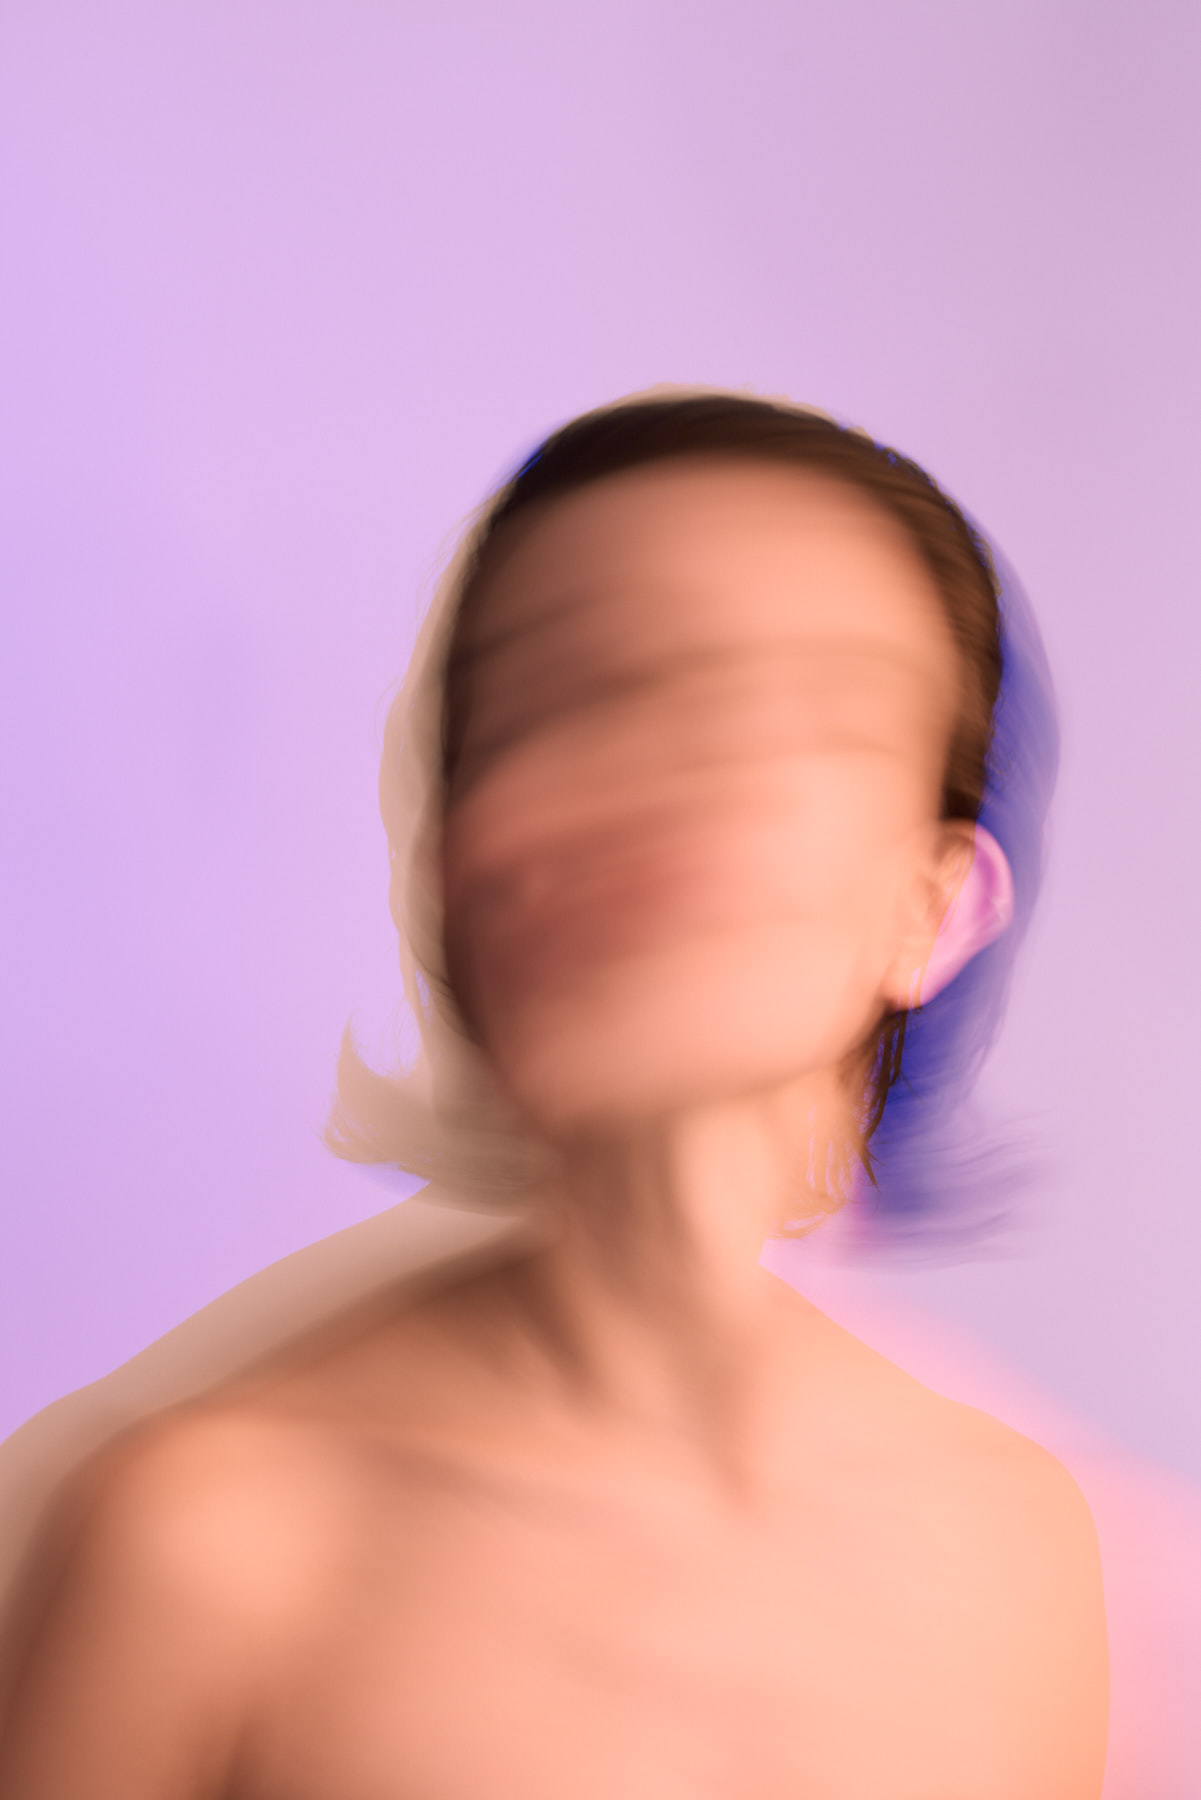 Blurry portrait of Norwegian actress Susanne Karin Moe.